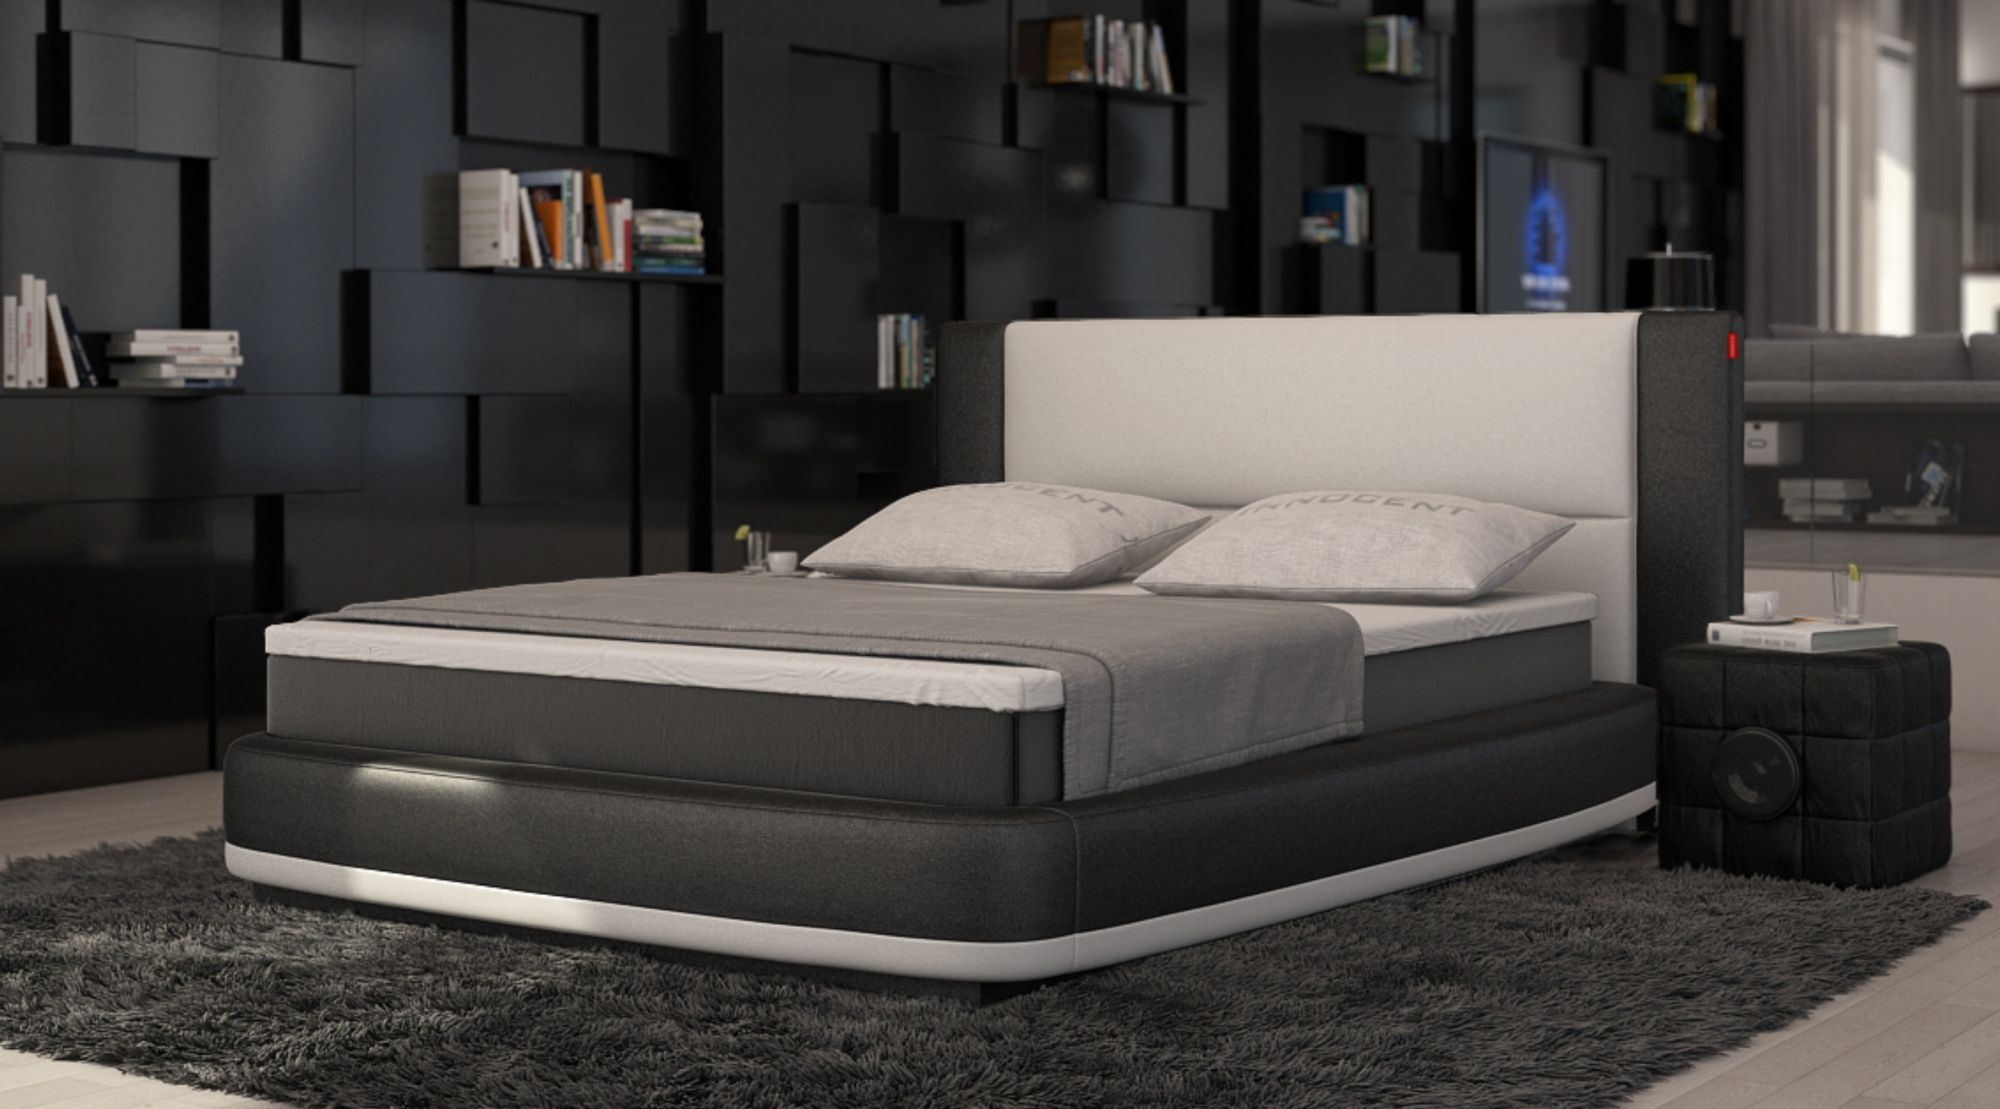 Bett Modern Design Box Spring Bed Aquila Design Upholstered Bed Designerbett ...